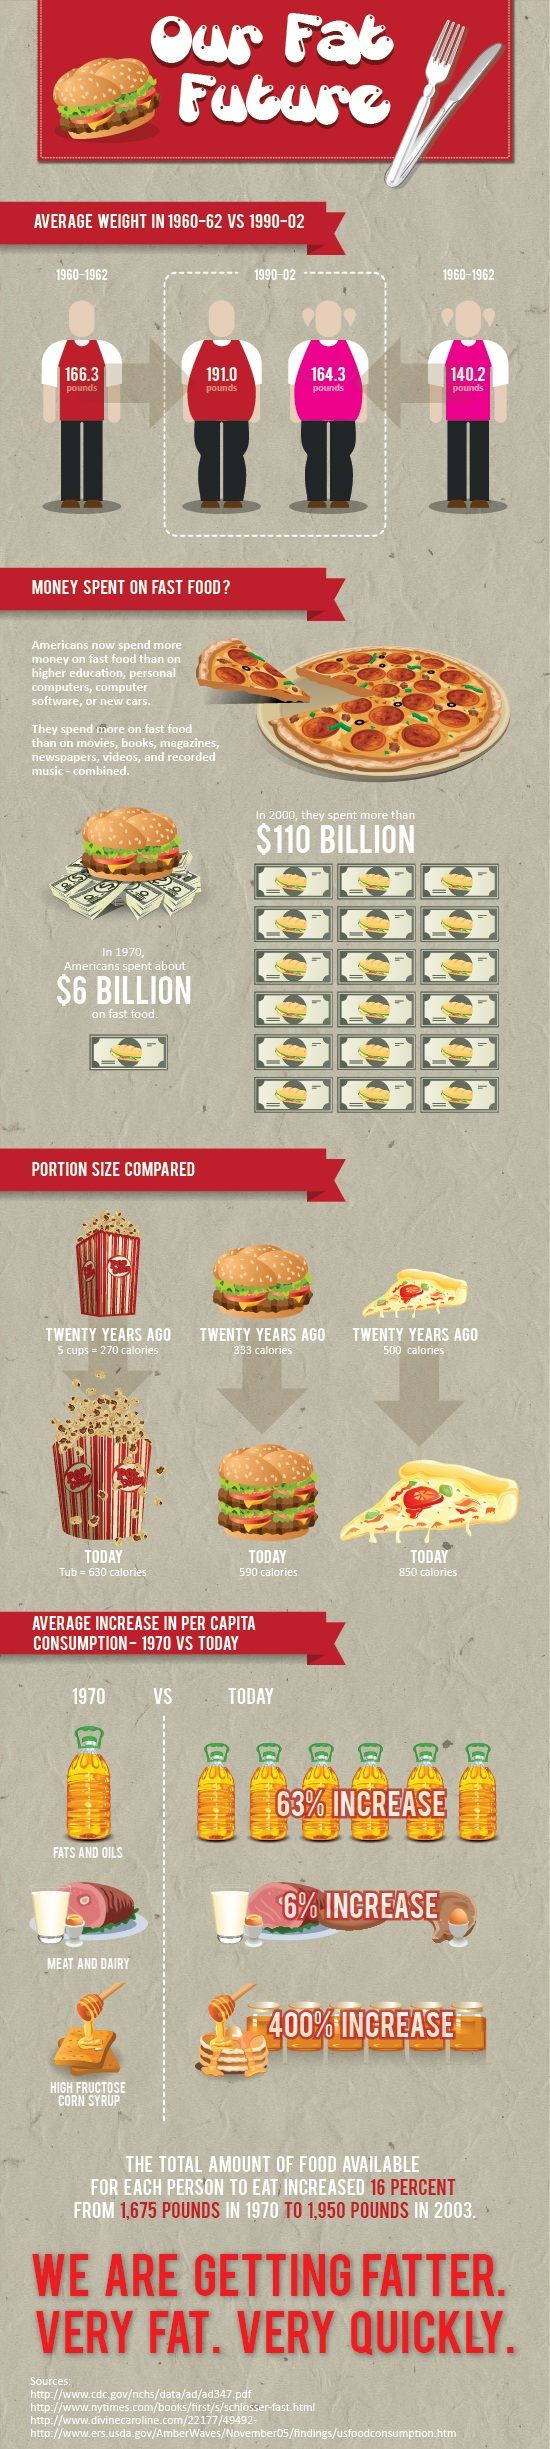 Why Americans Are Getting Fatter (Infographic)